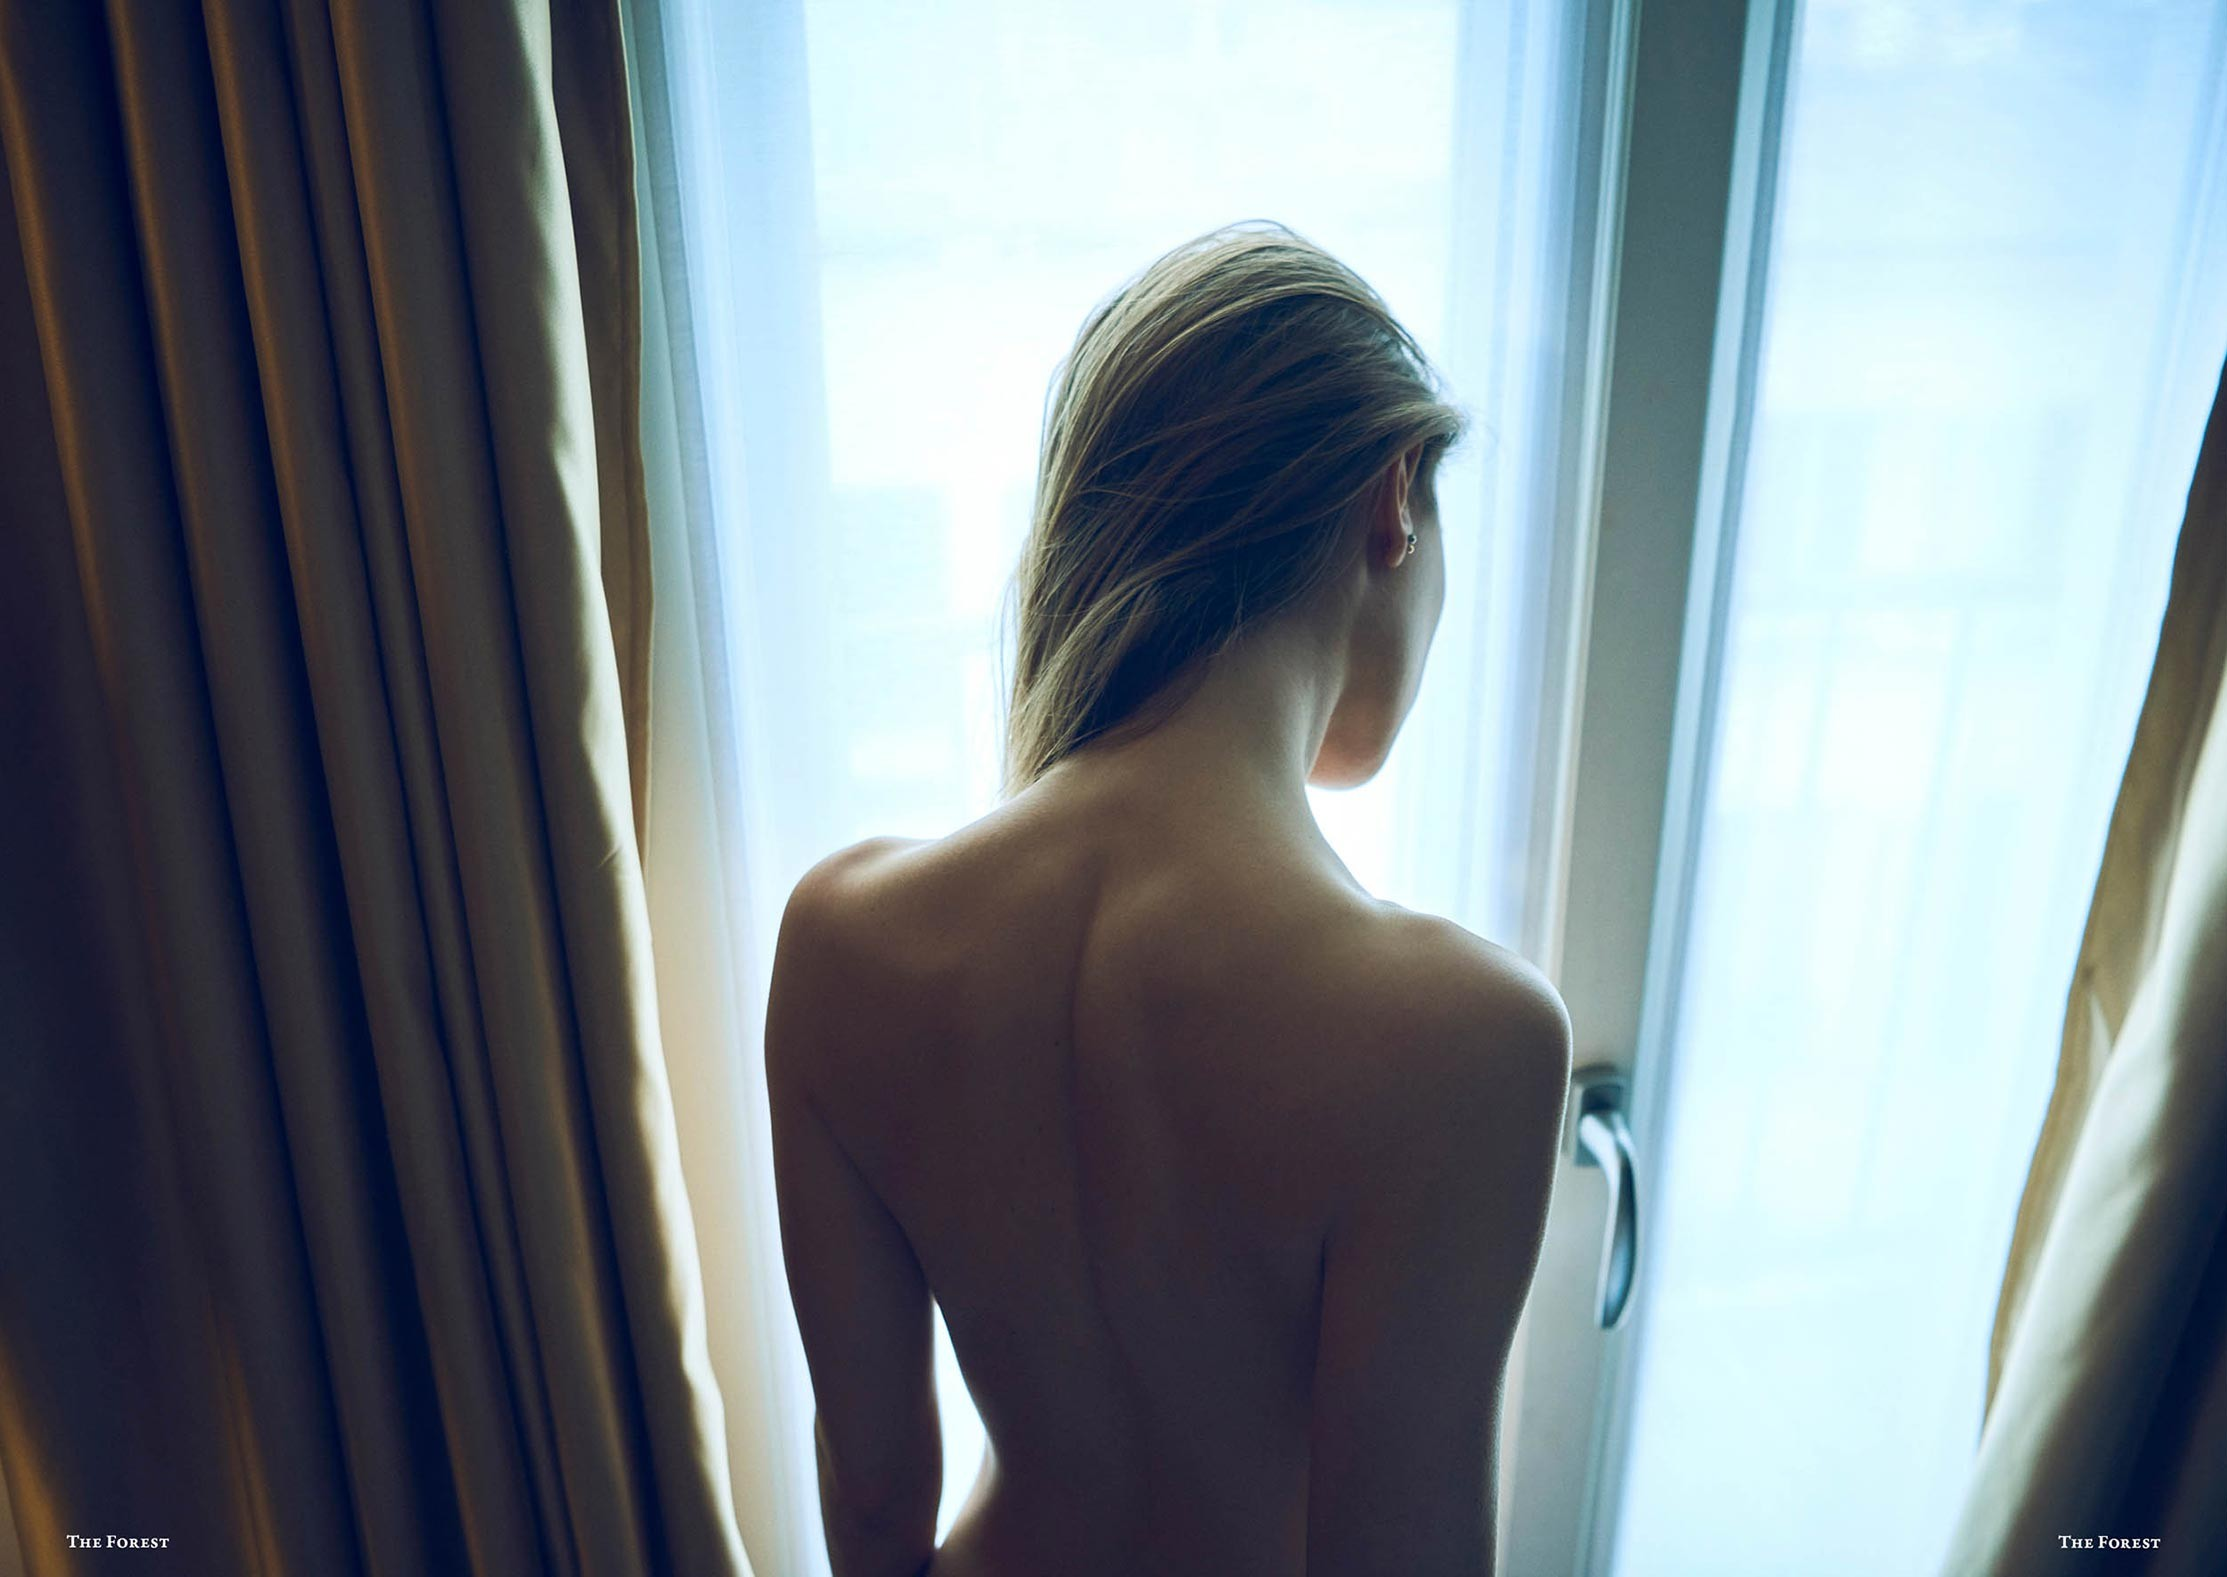 Miluniel nude by Stefan Rappo - the forest magazine